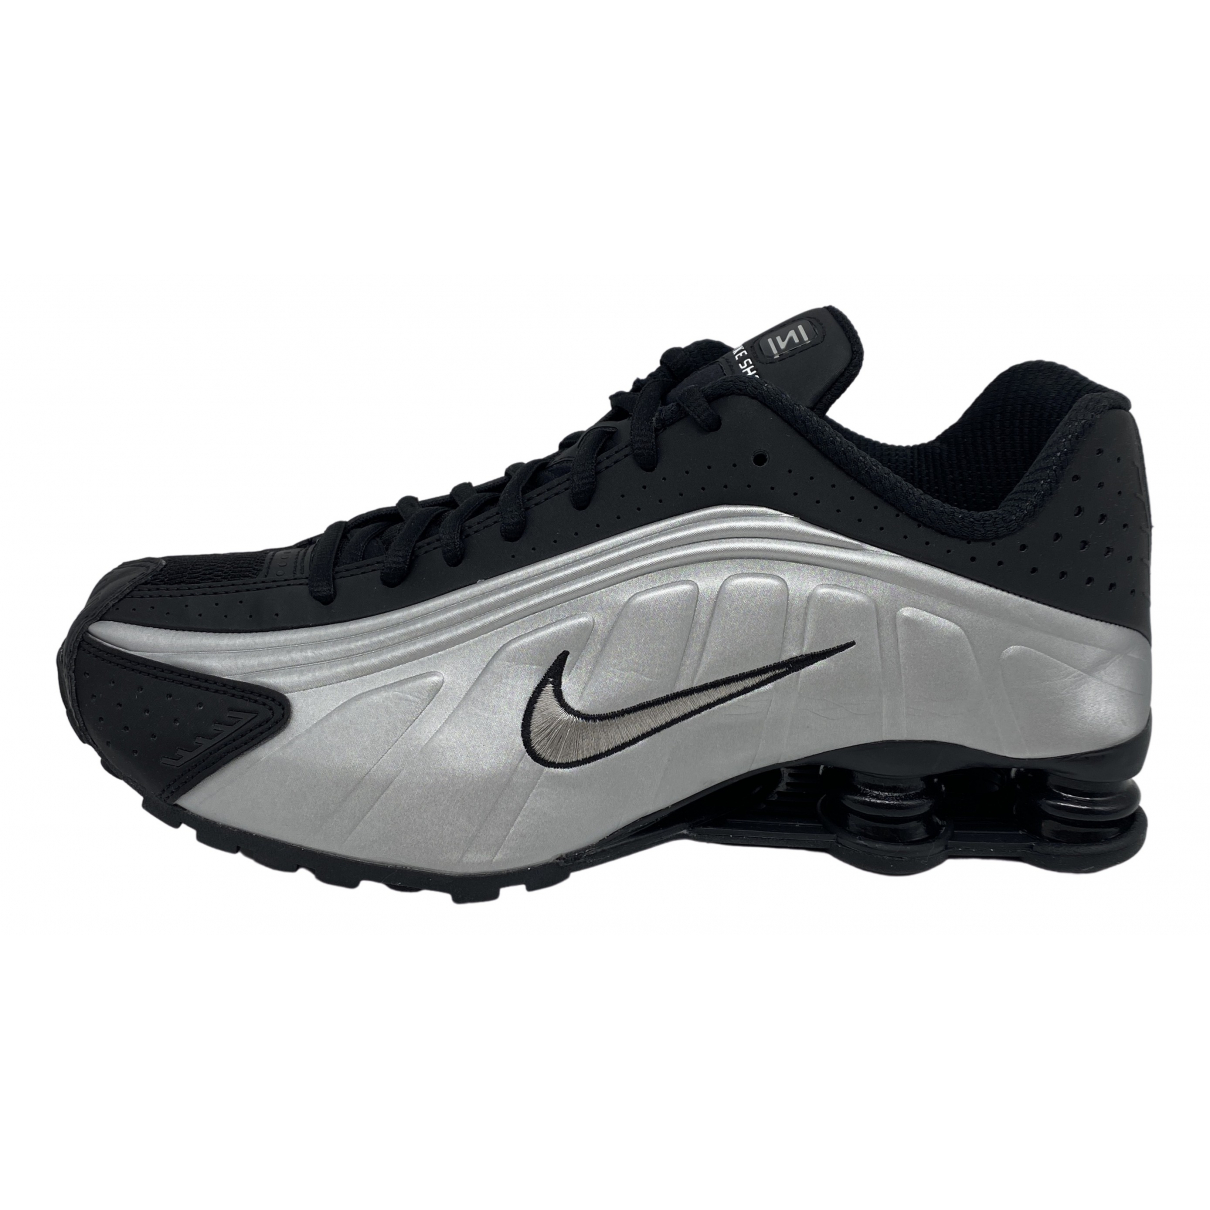 Nike Shox Metallic Leather Trainers for Men 39 EU